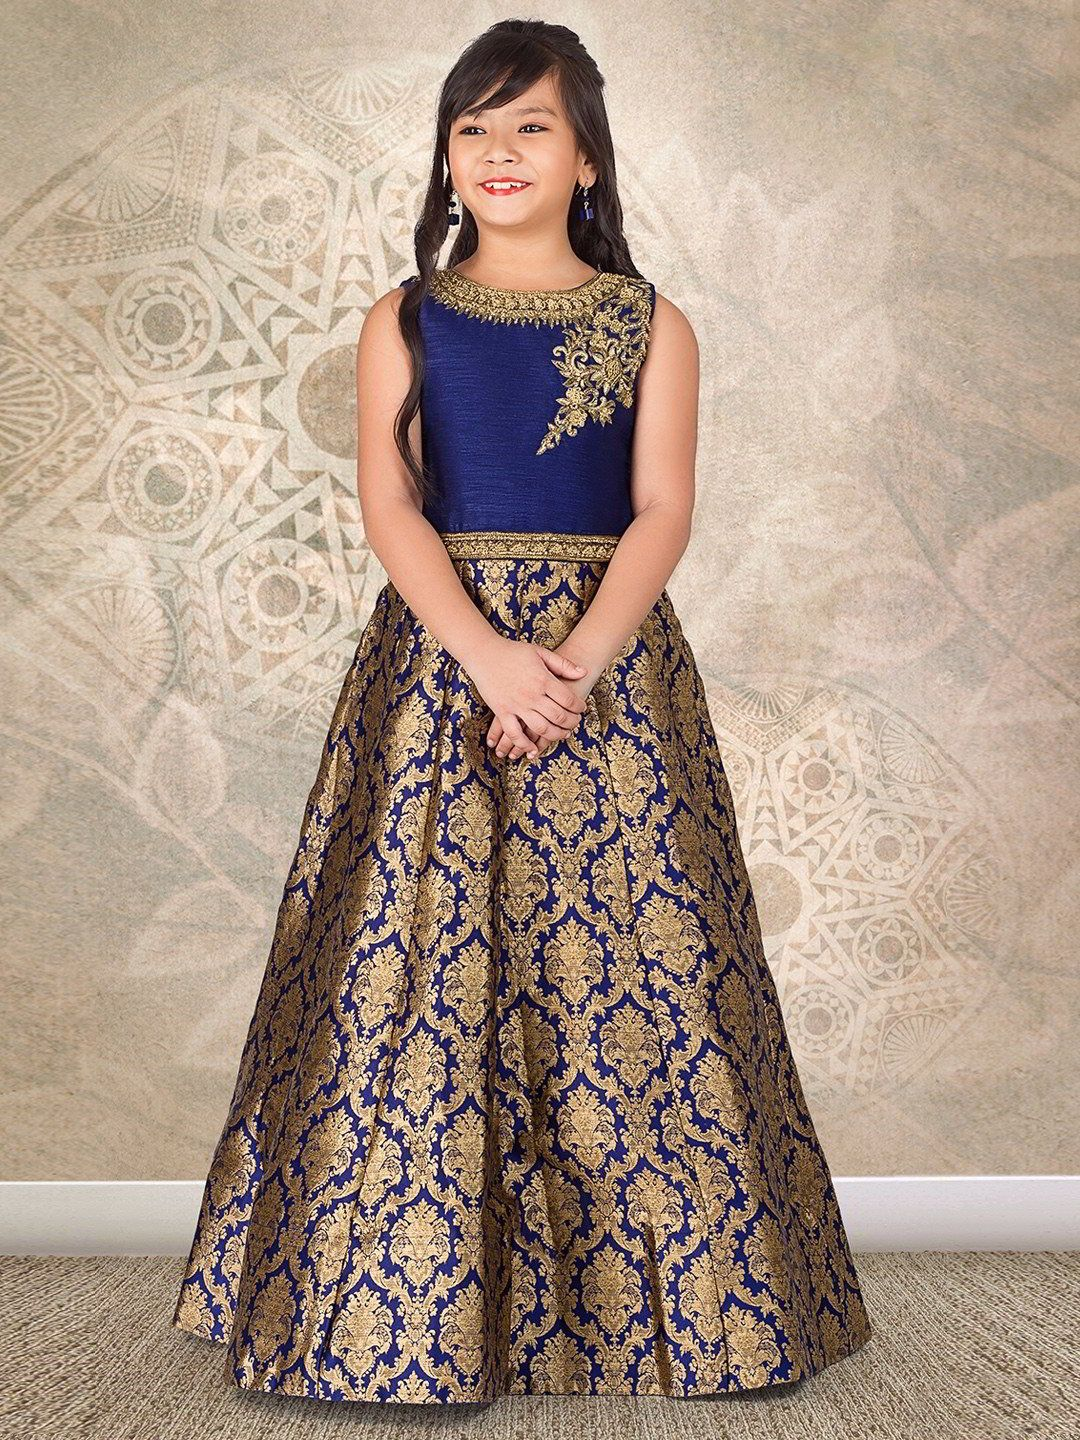 Pin by Dhana Lakshmi on Indian clothes | Gowns for girls